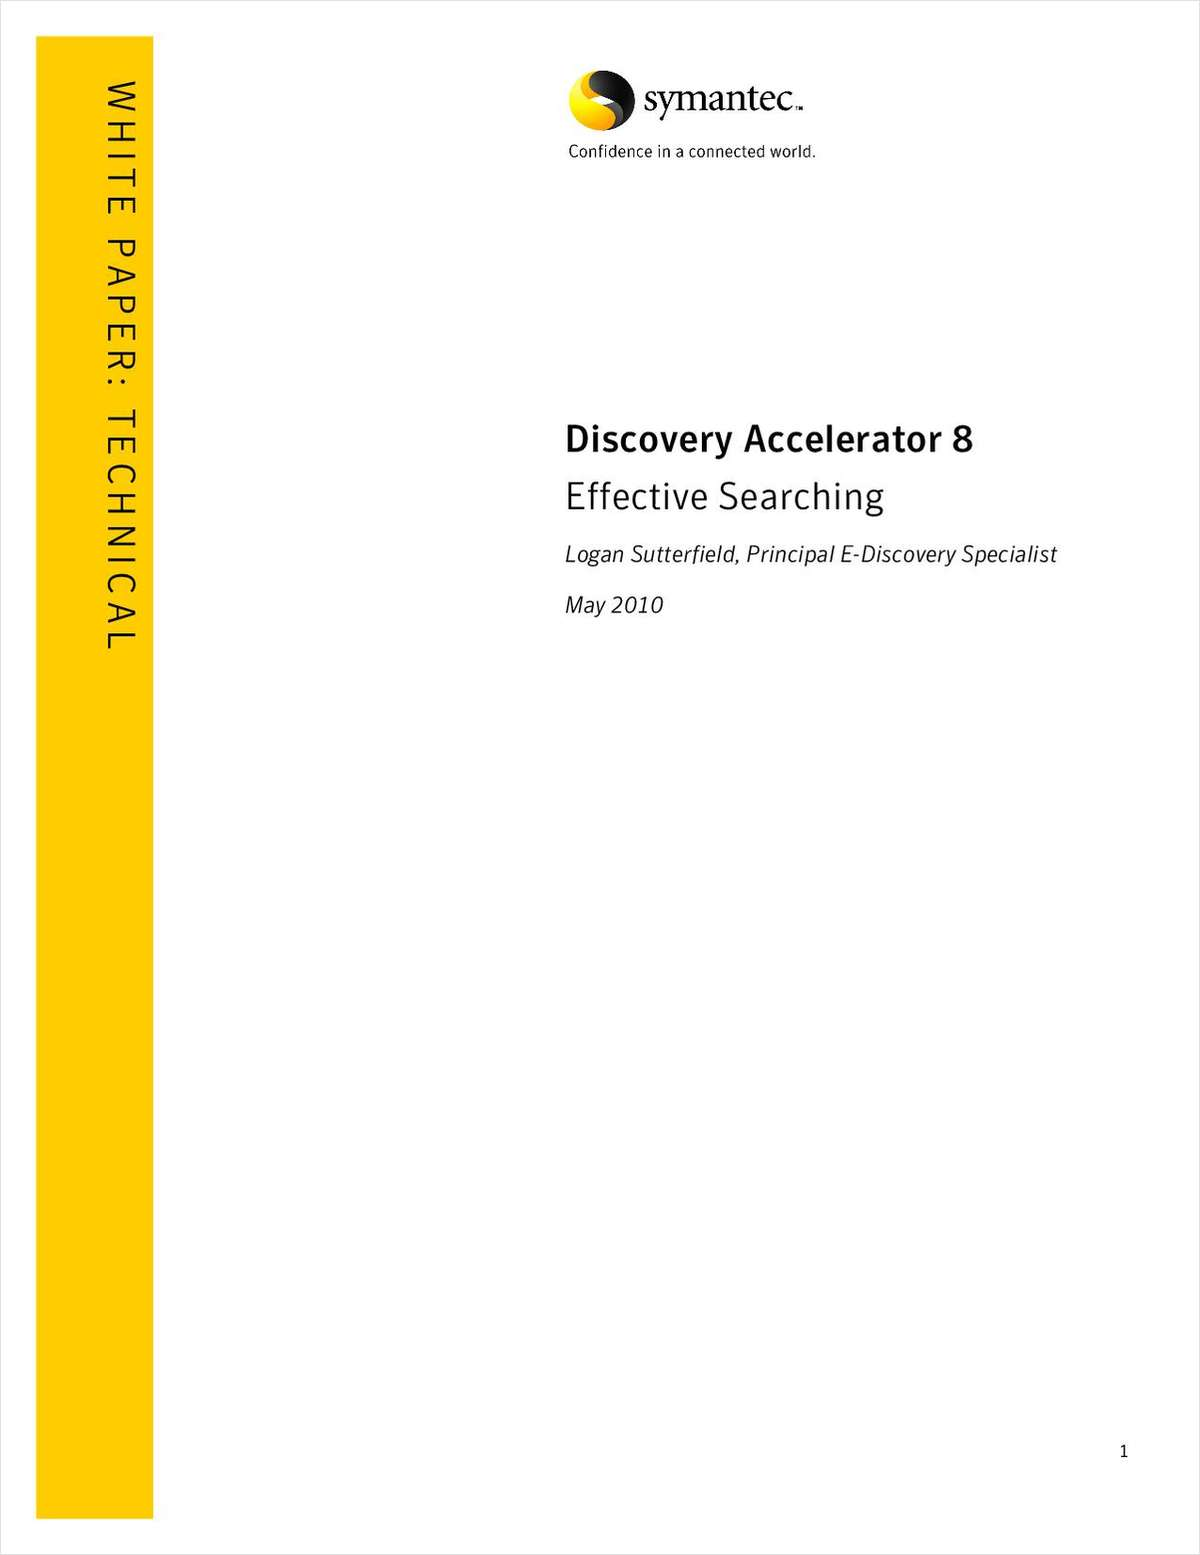 Discovery Accelerator 8 Effective Searching